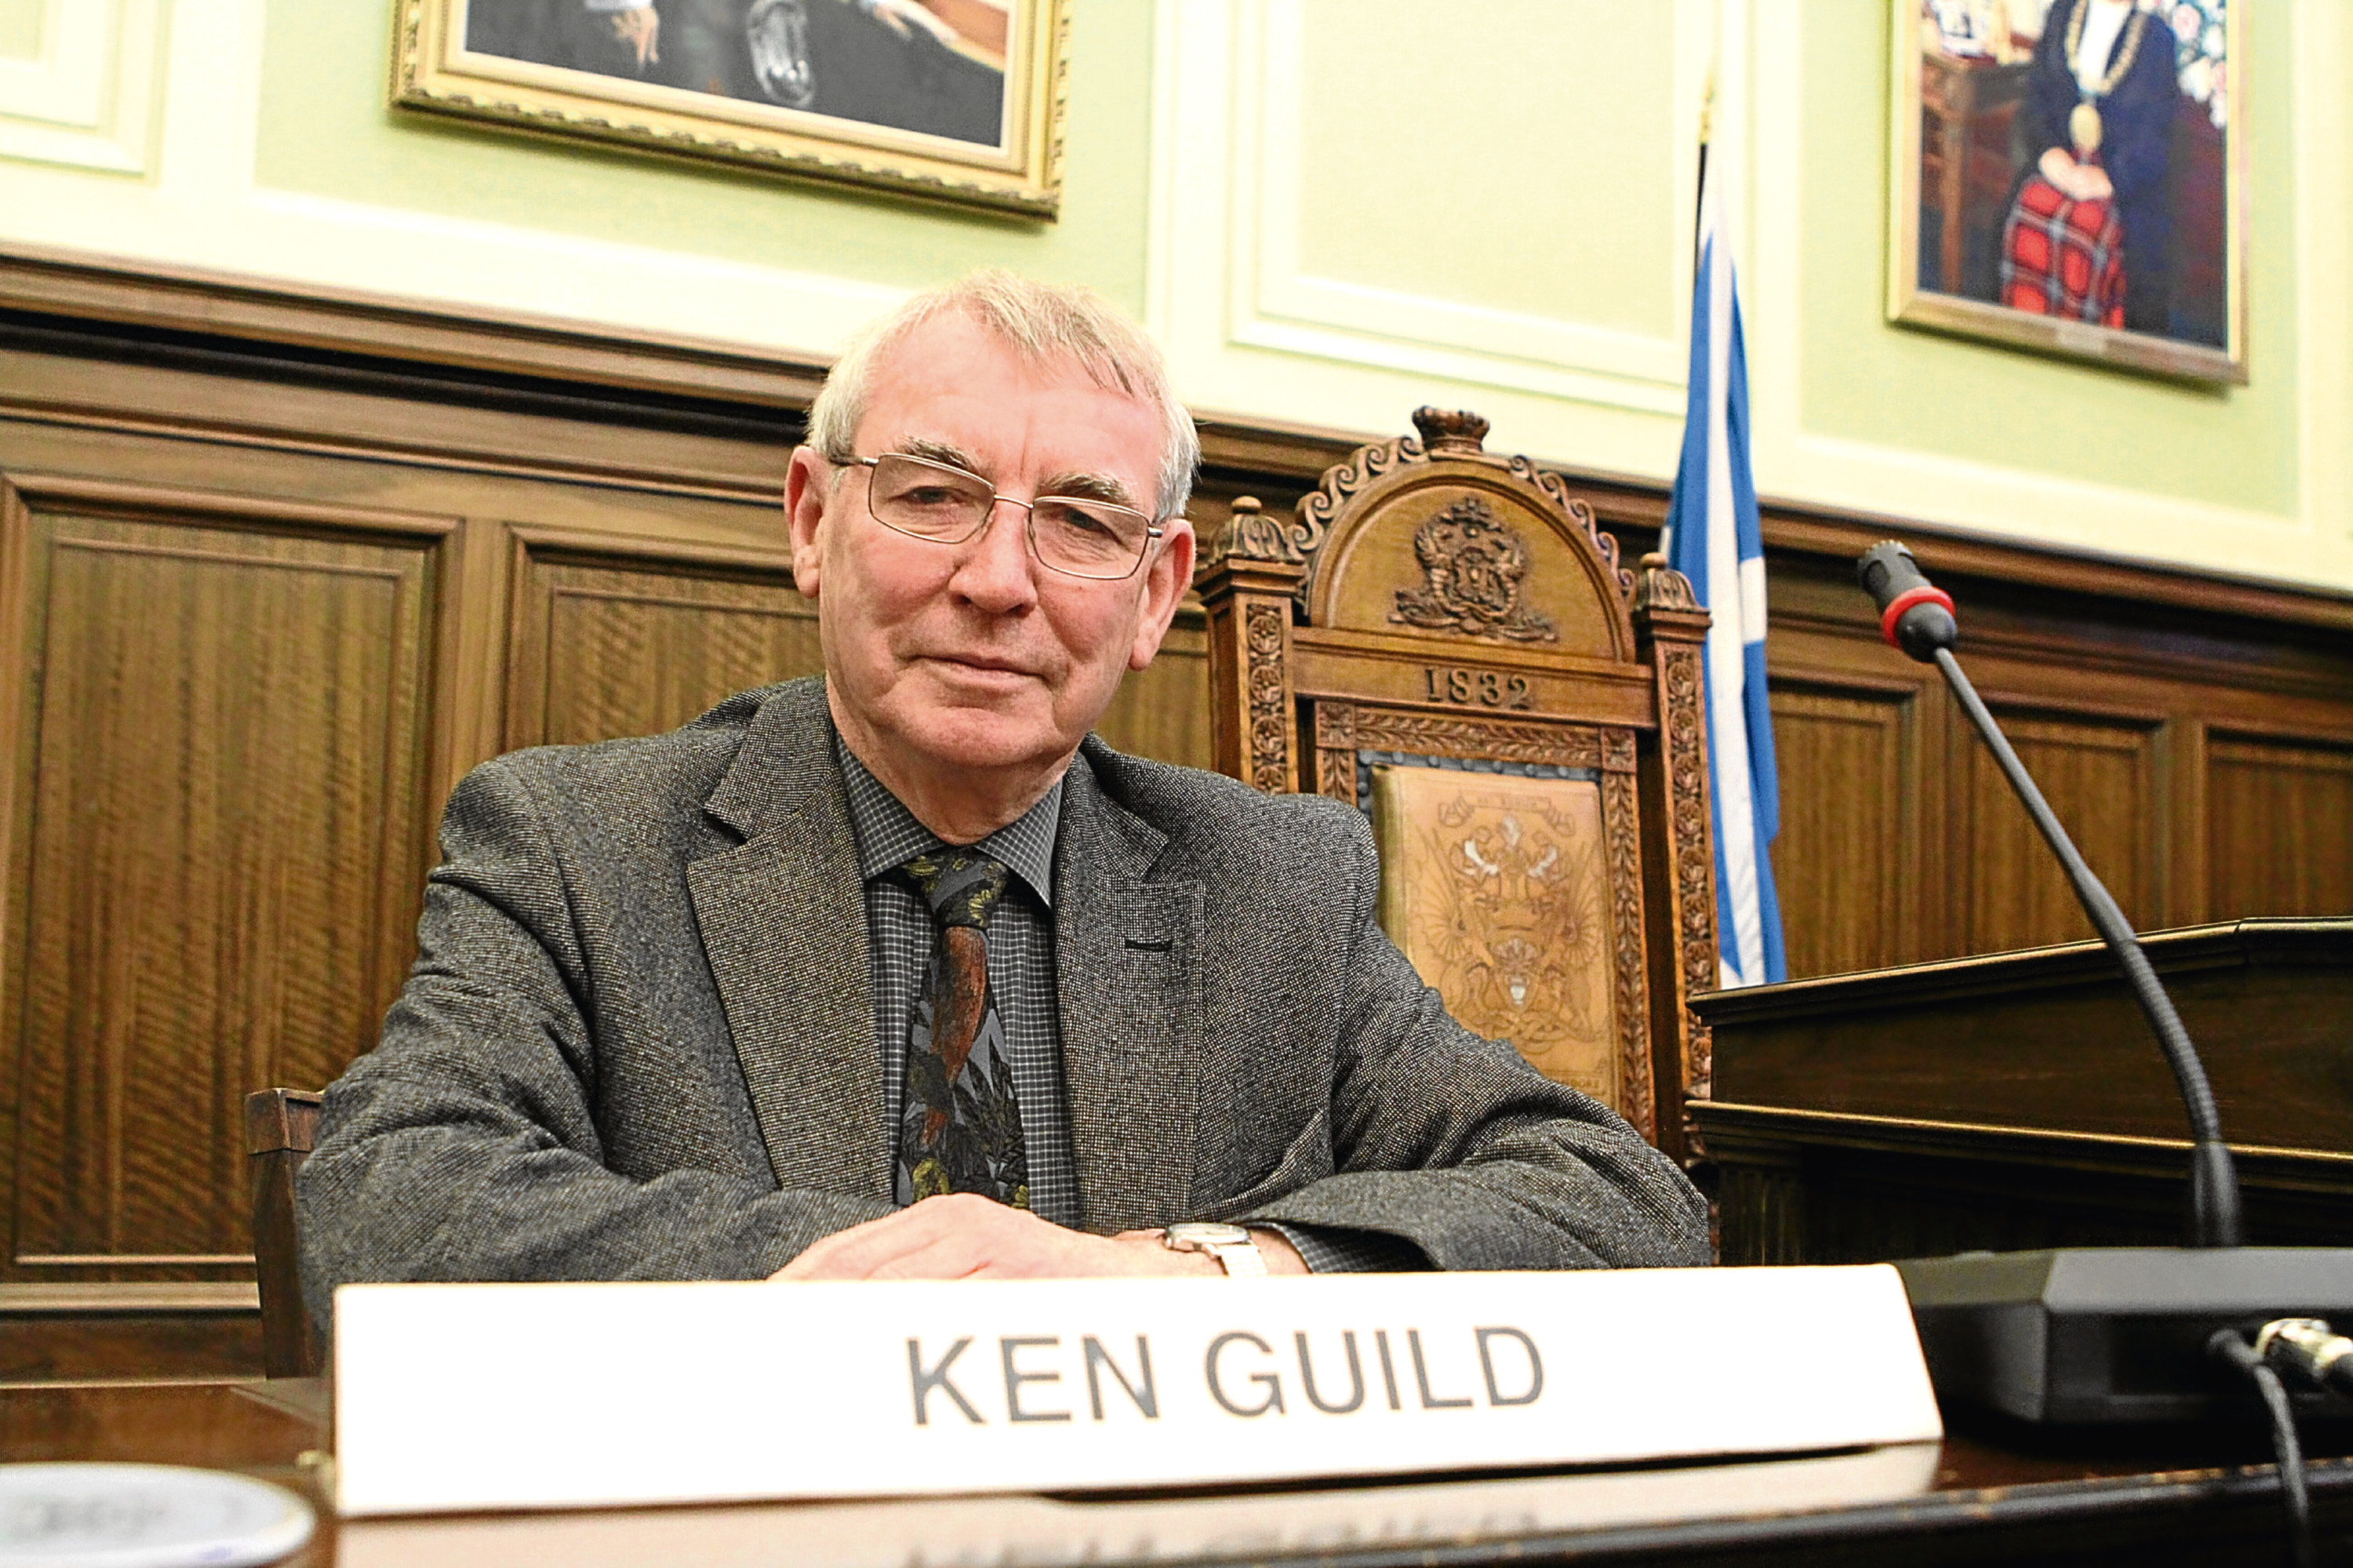 Council leader Ken Guild is to stand down in May